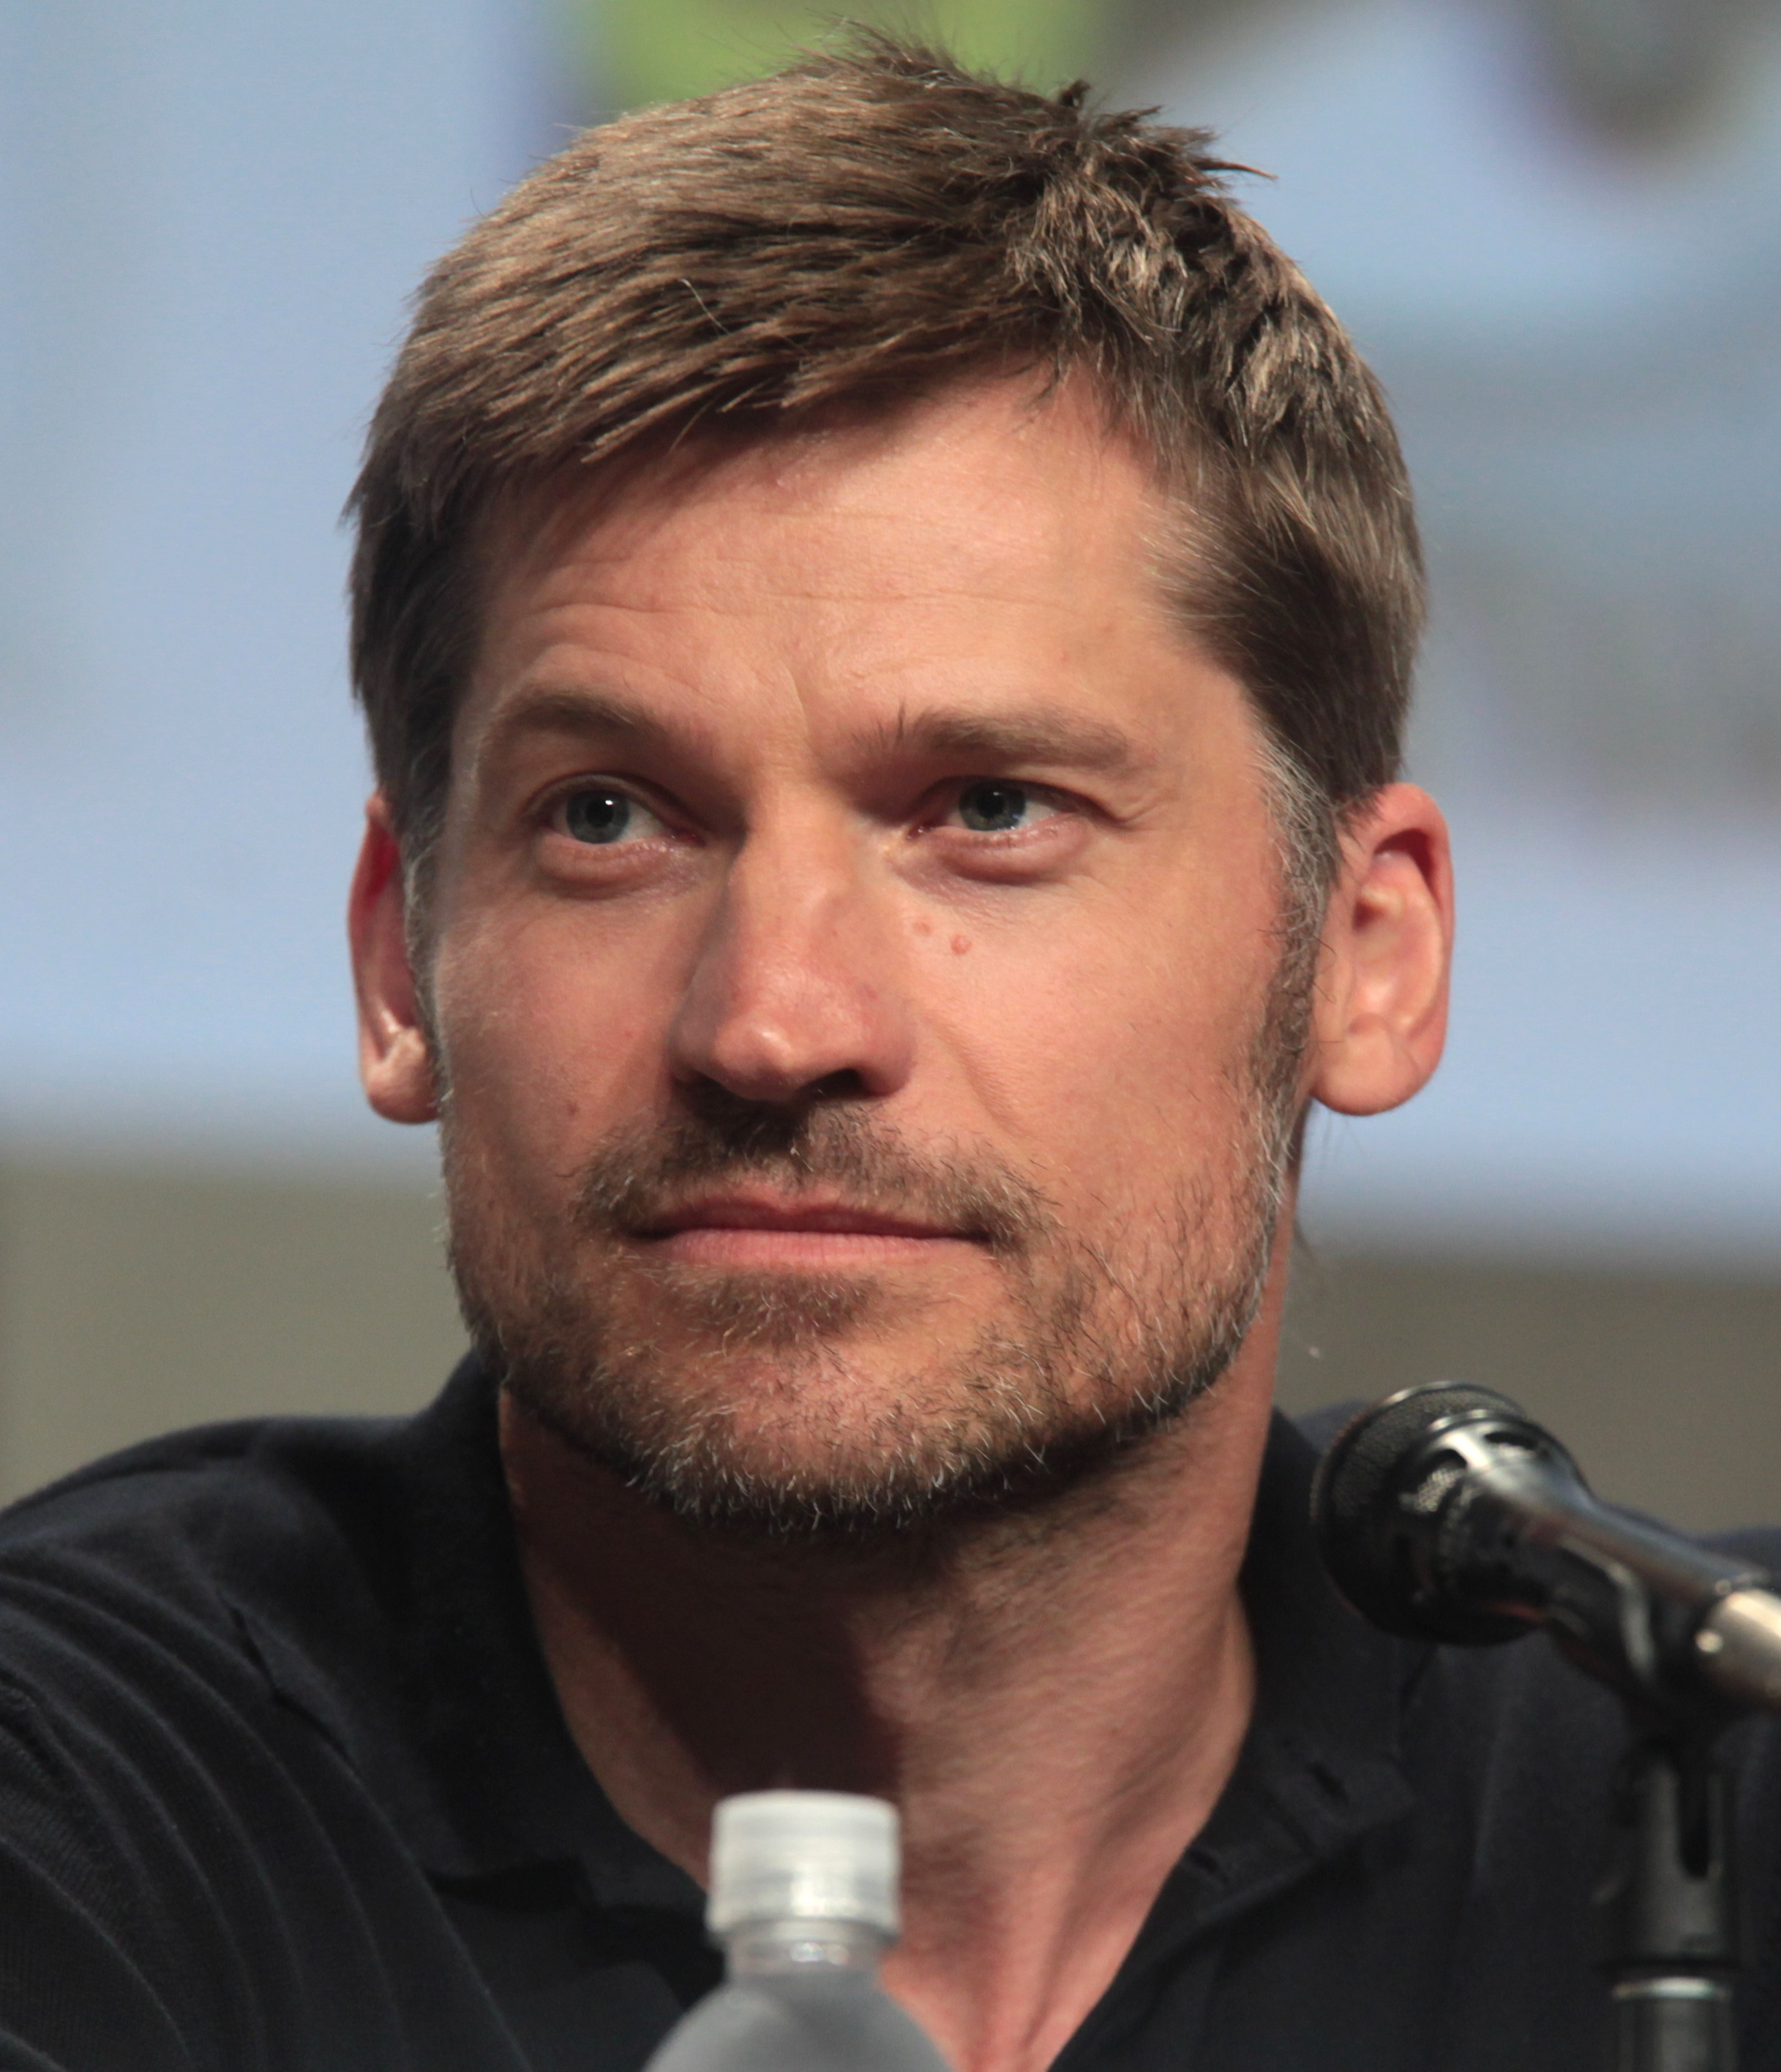 Nikolaj Coster-Waldau earned a  million dollar salary, leaving the net worth at 6 million in 2017